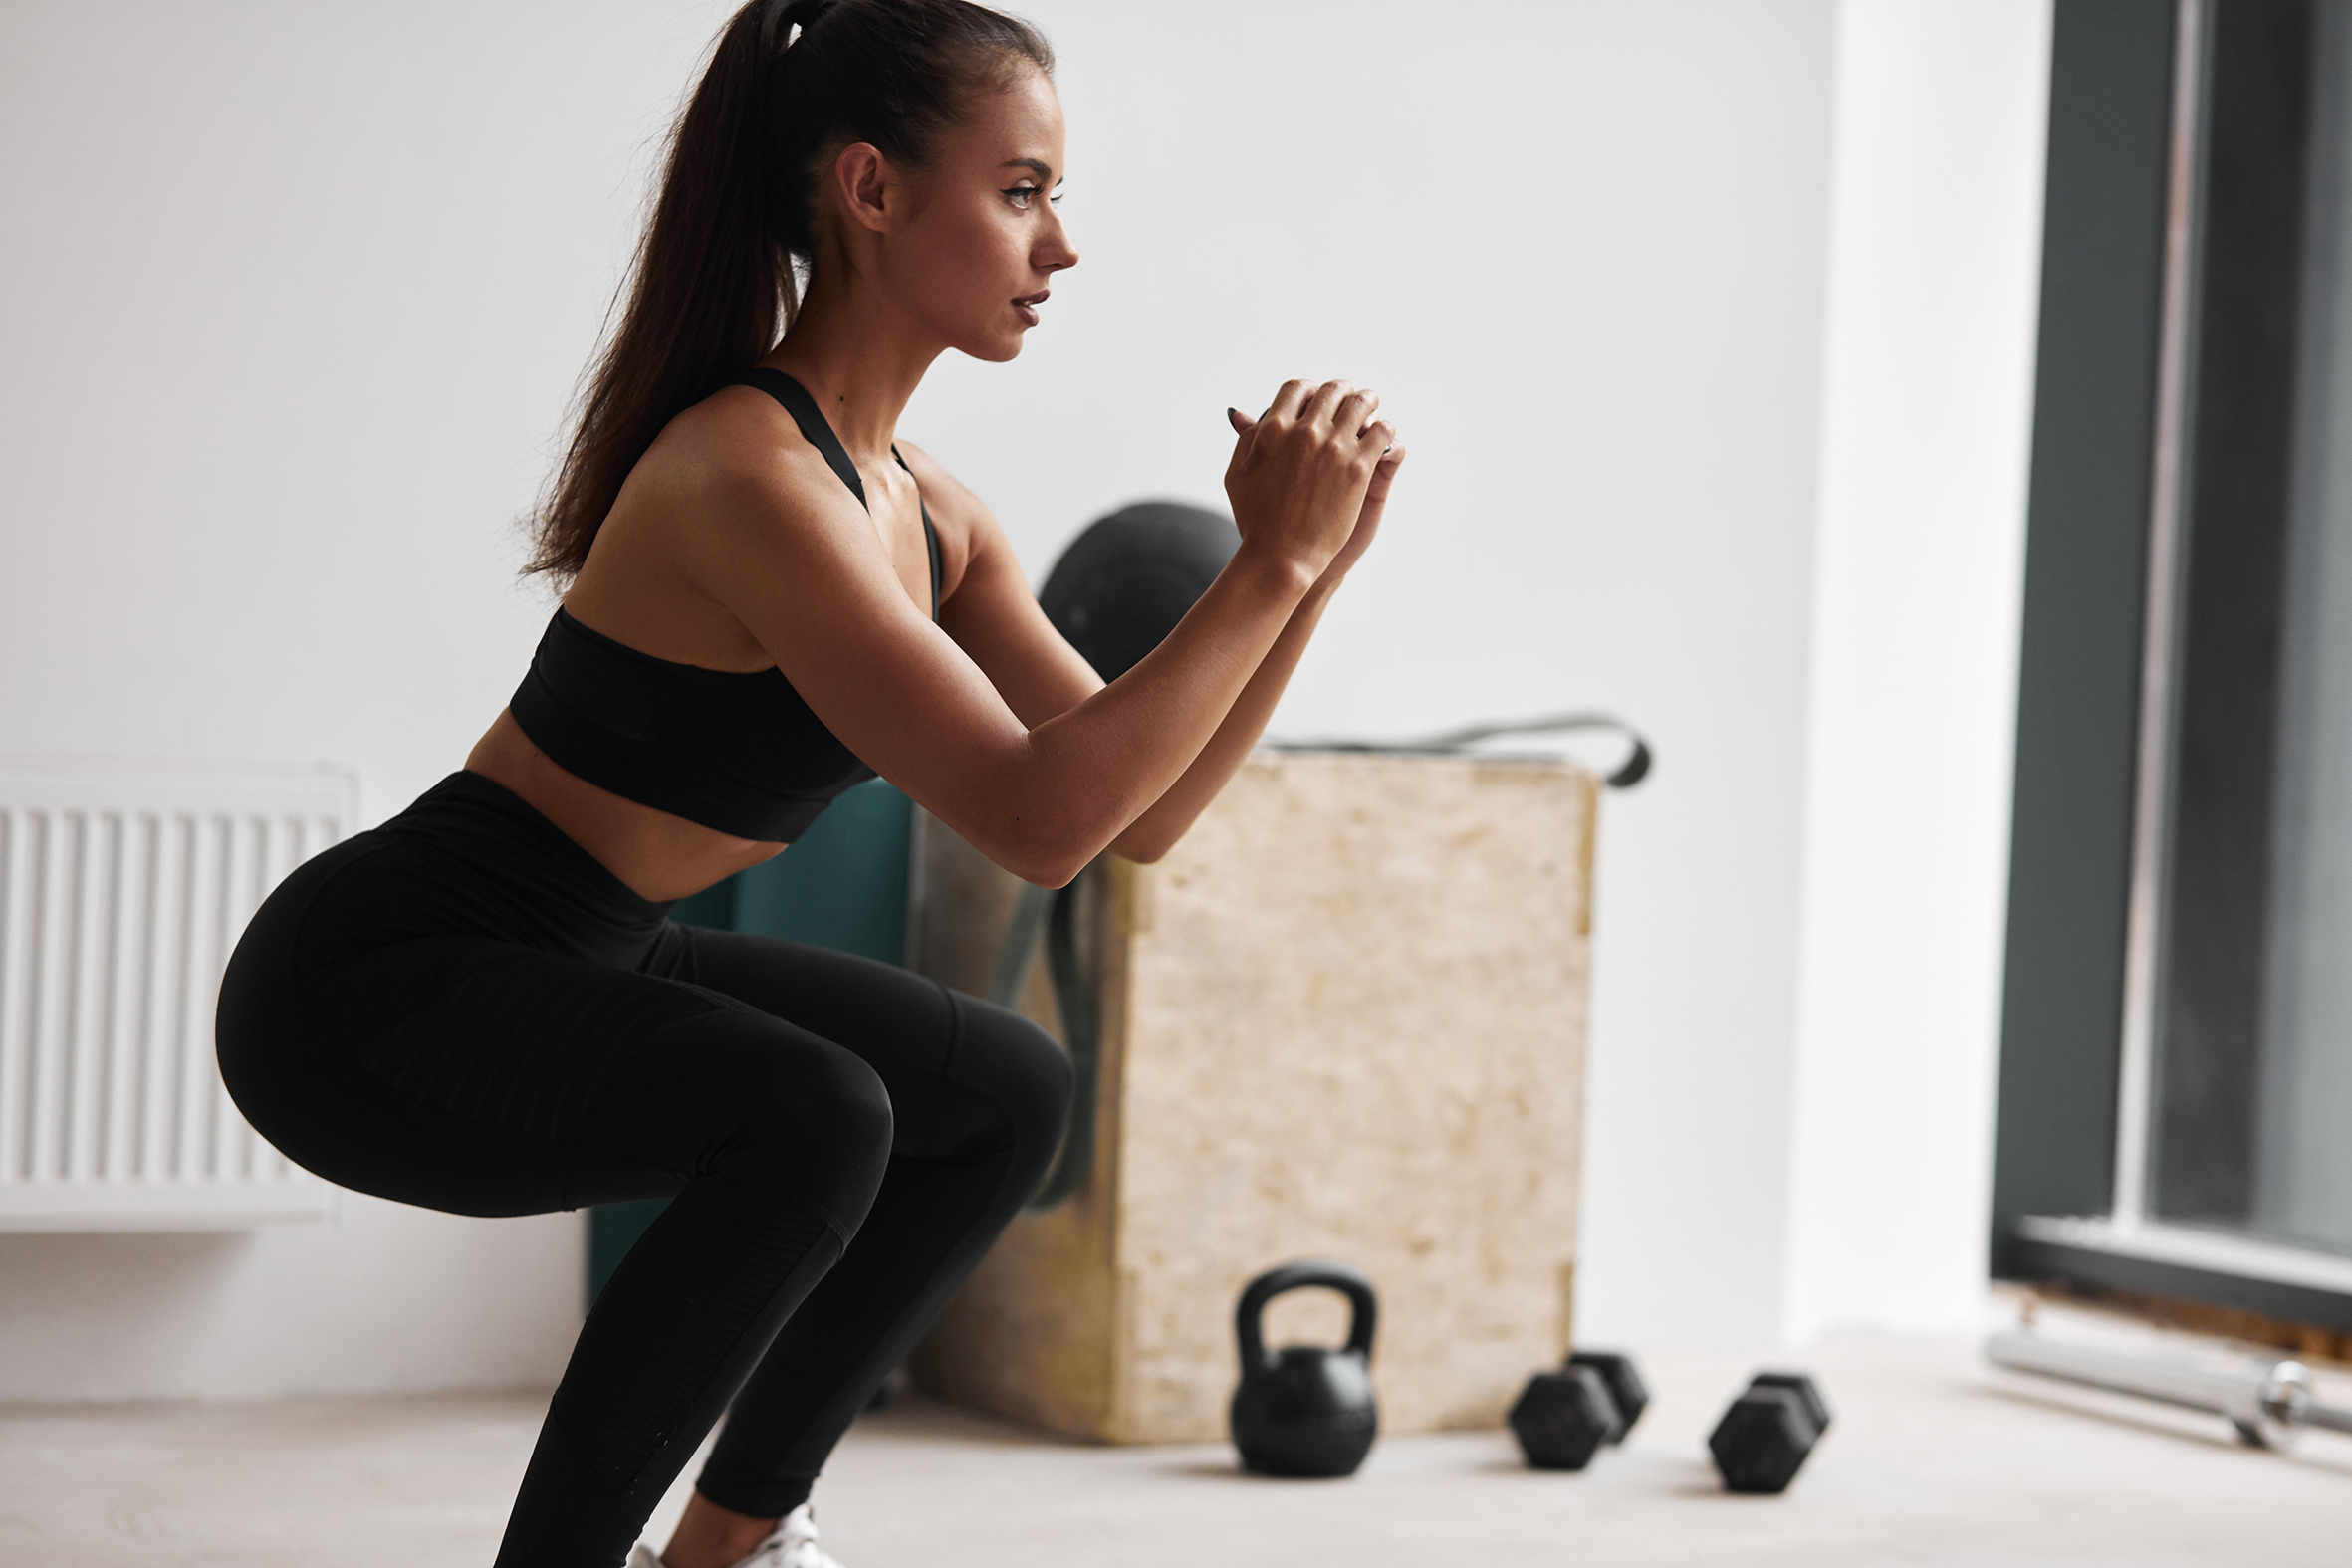 Squats by fit beautiful woman